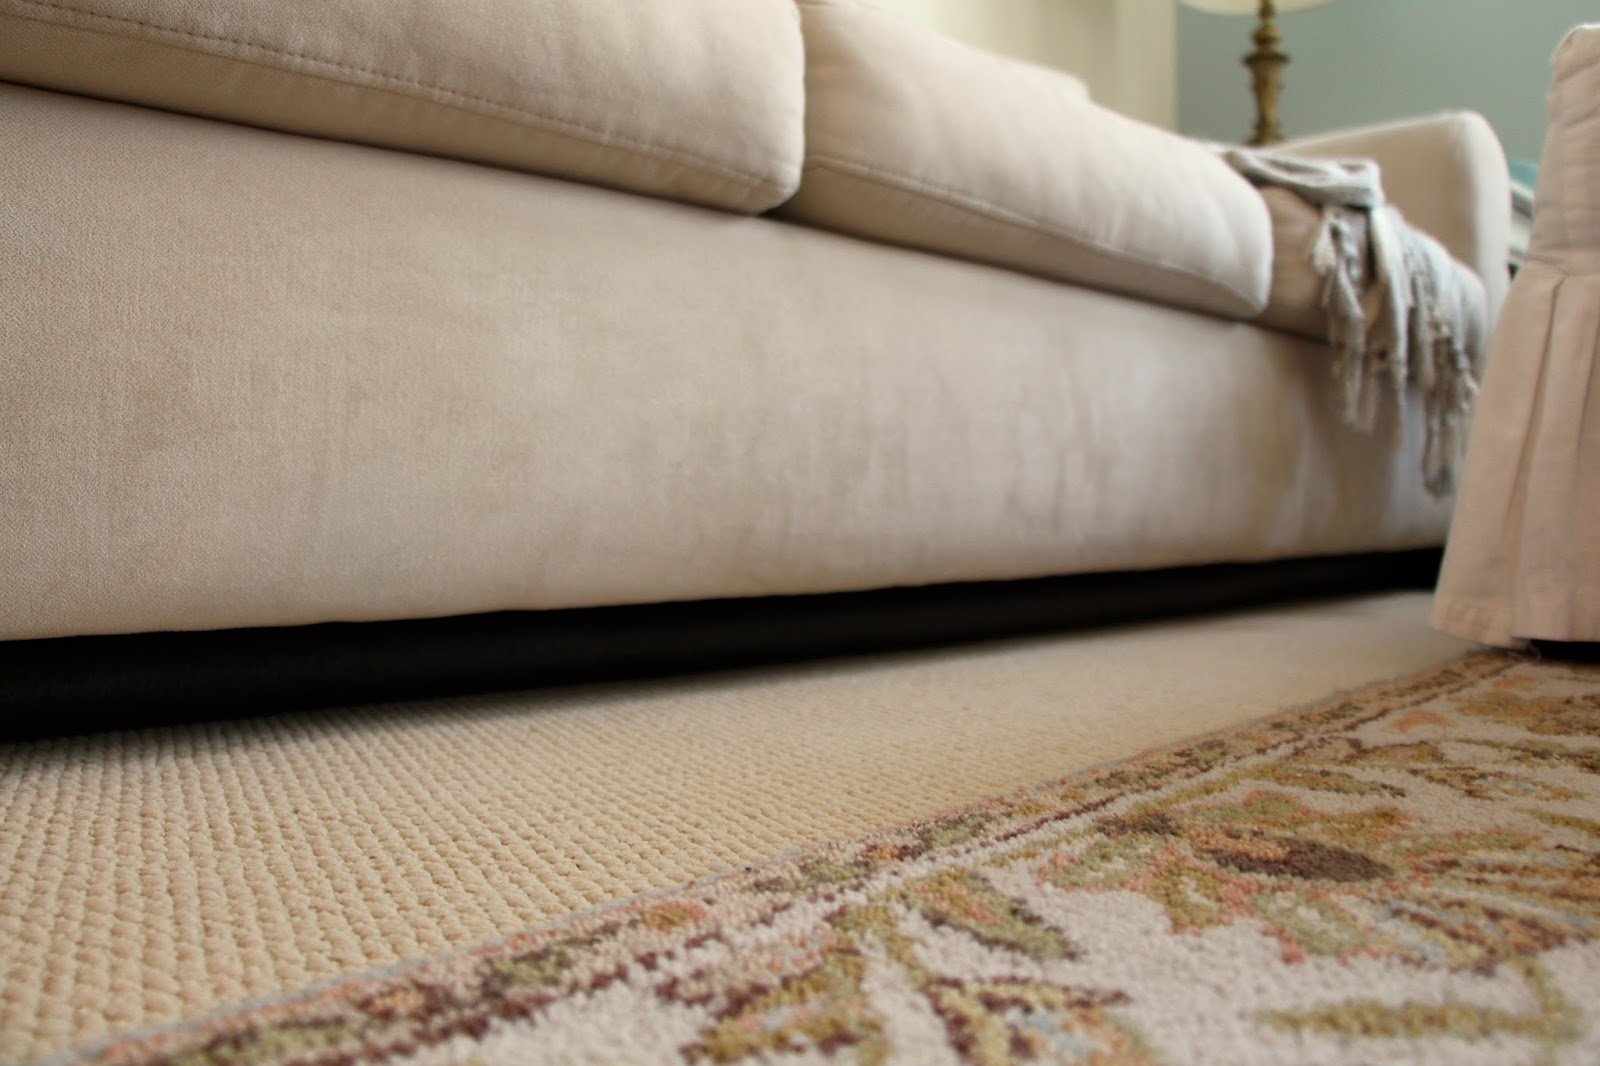 Couch Dust Cover